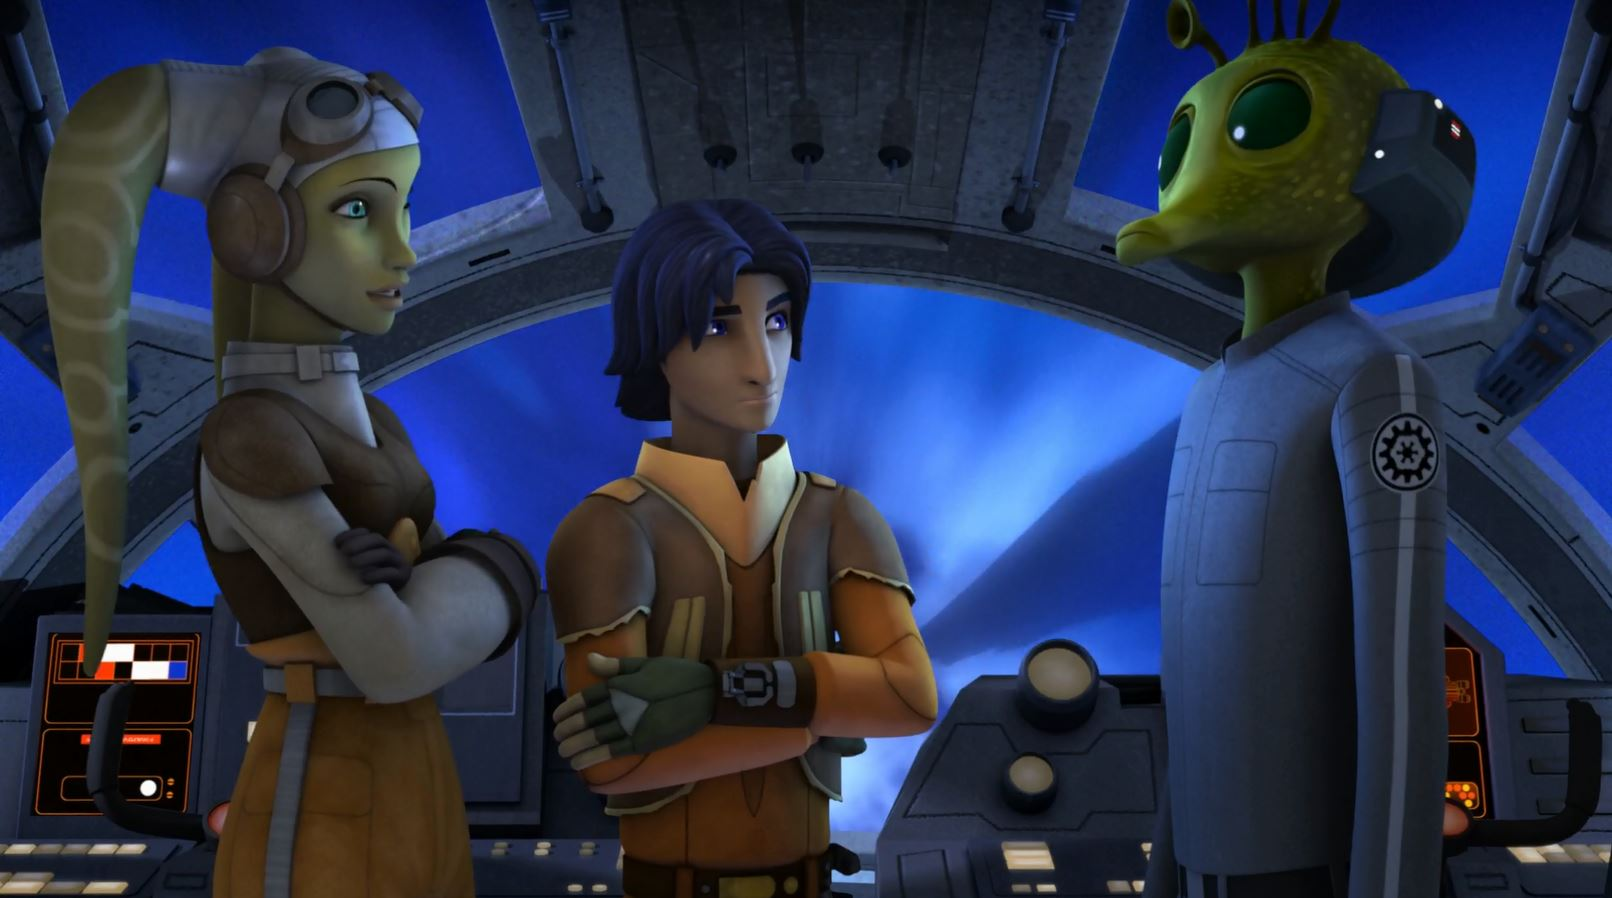 Hera, Ezra and Tseebo. Star Wars Rebels Gathering Forces Review